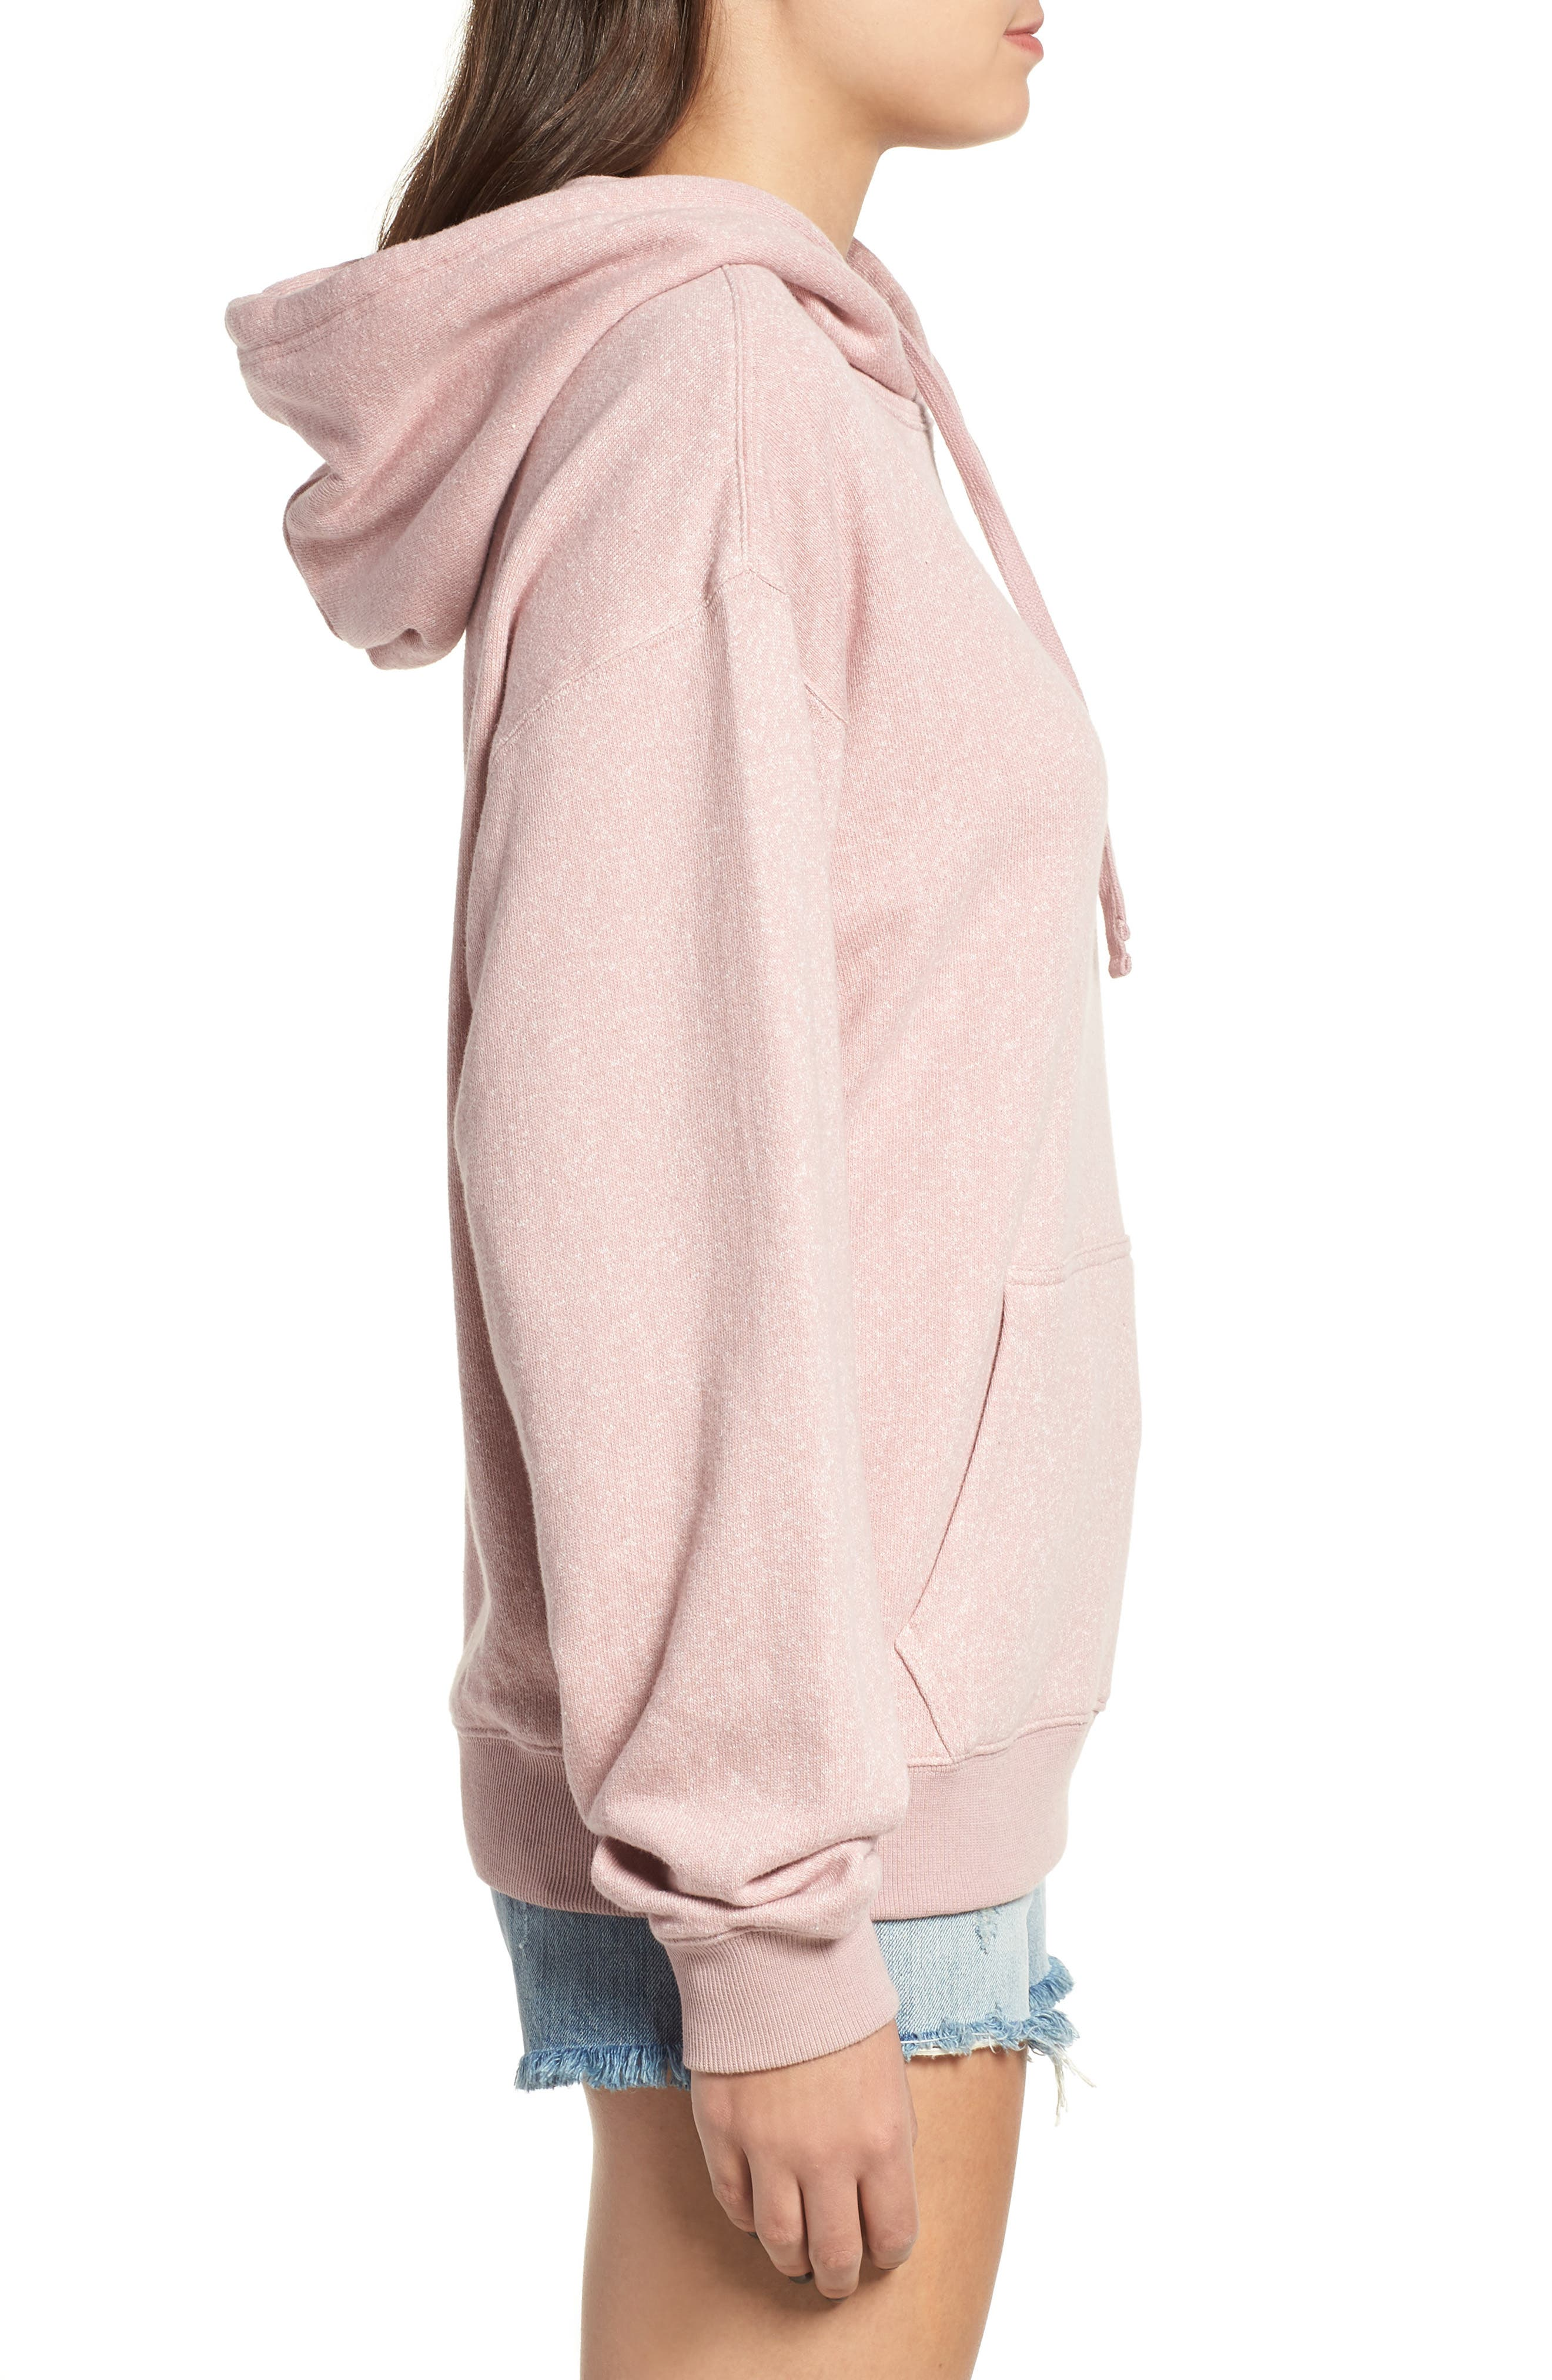 Shelbee Hoodie,                             Alternate thumbnail 3, color,                             DEAUVILLE MAUVE